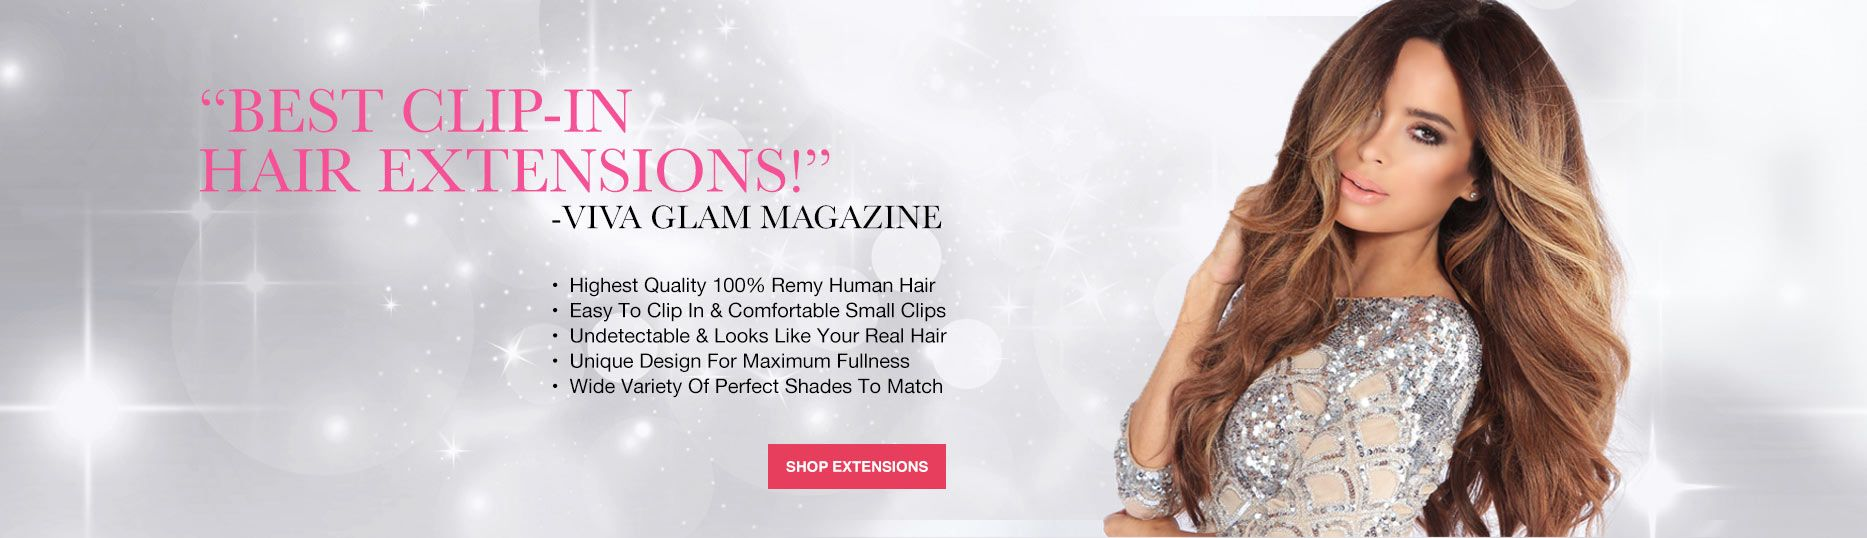 Shop the best clip-in extensions with the highest quality remy human hair as seen on Shark Tank.